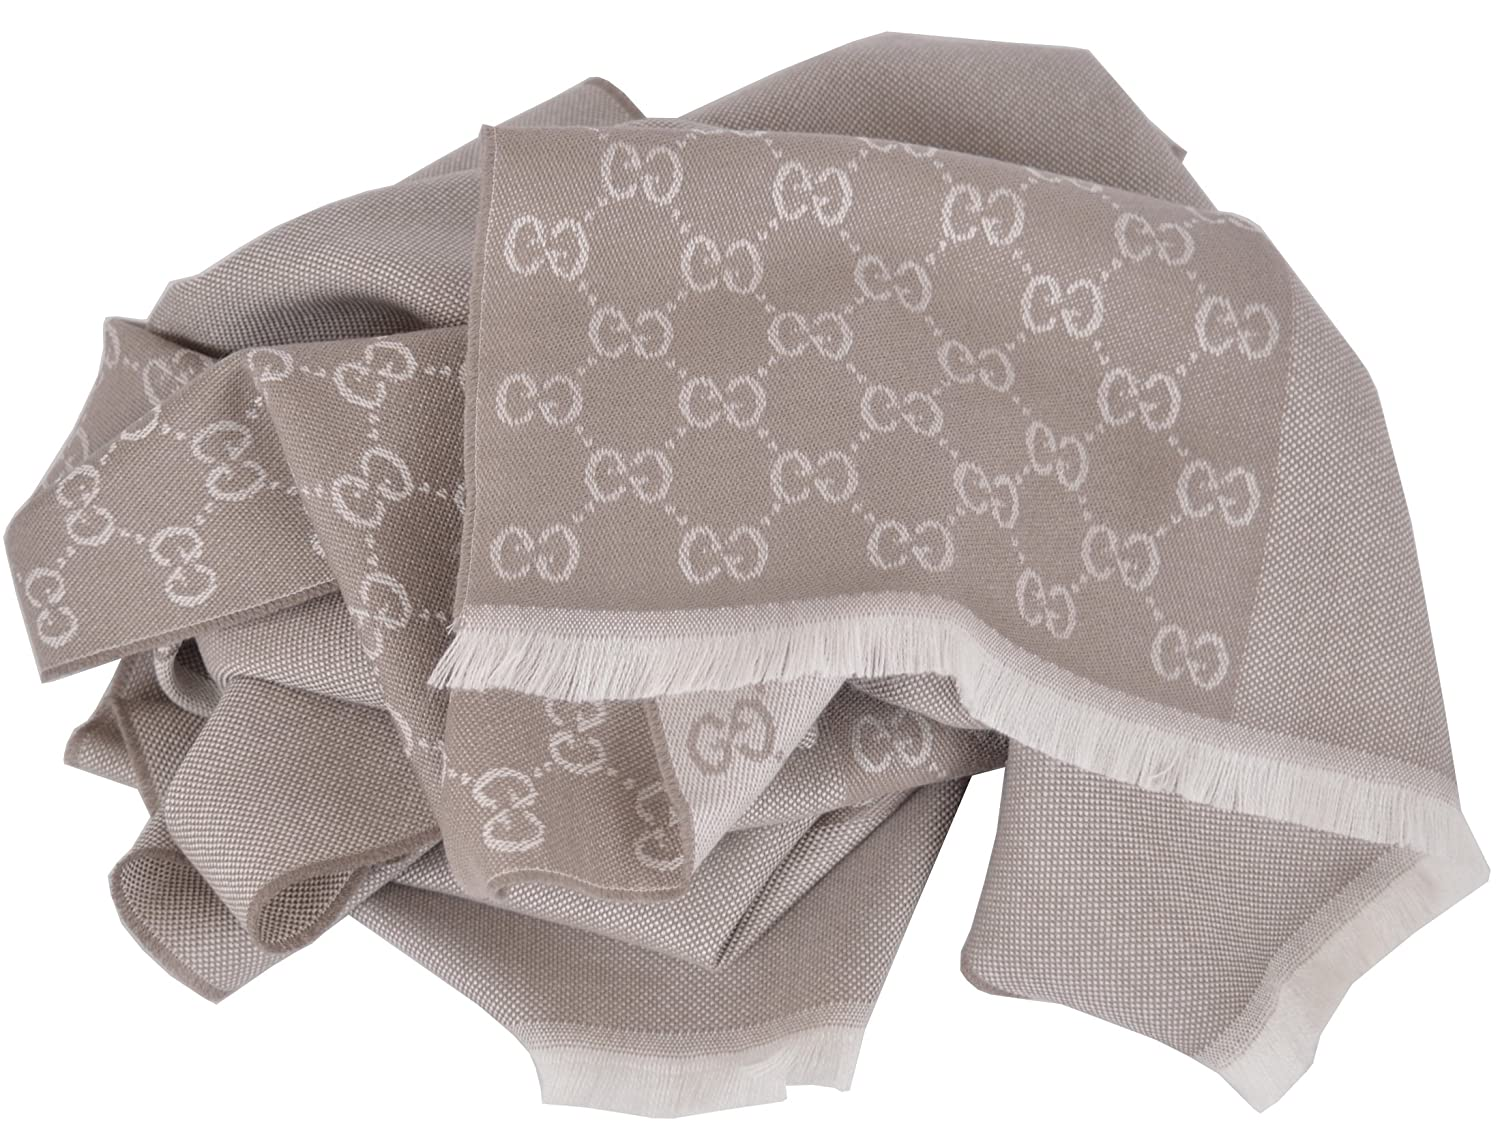 399d50e3819 Gucci Men's Wool Taupe Beige GG Guccissima Reversible Scarf: Amazon.co.uk:  Clothing